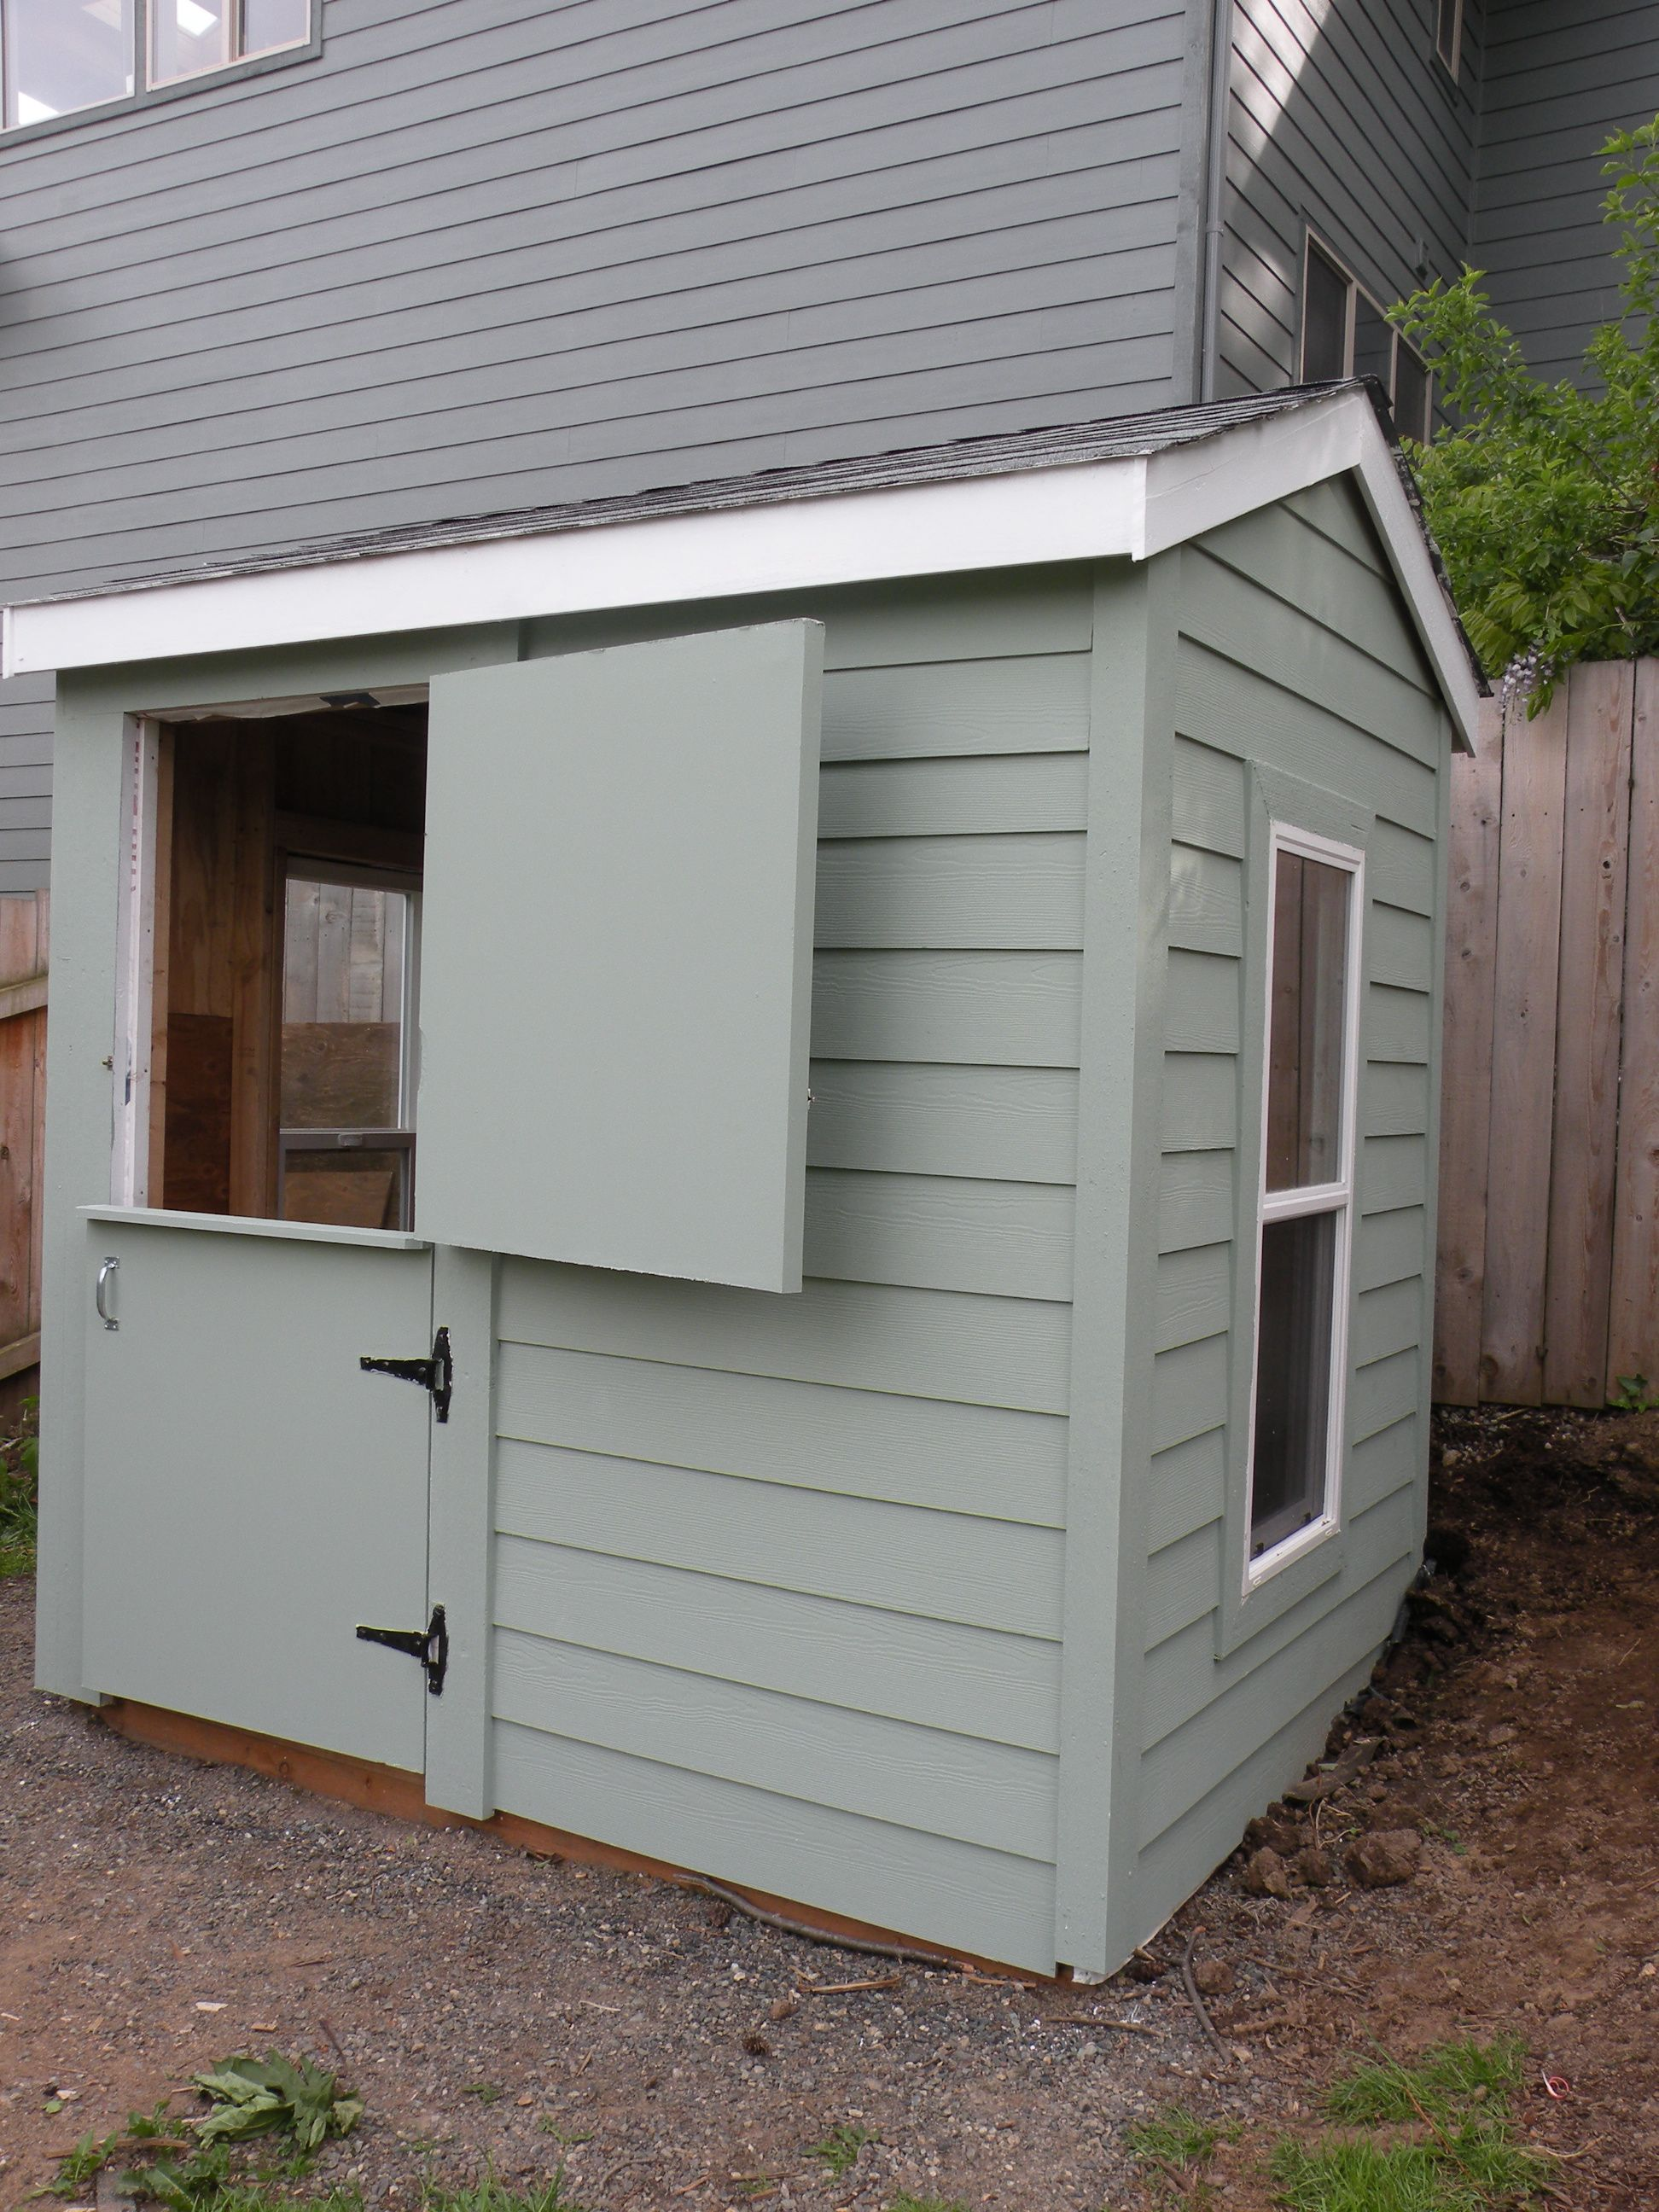 ^ 1000+ images about Goat shed pallets on Pinterest